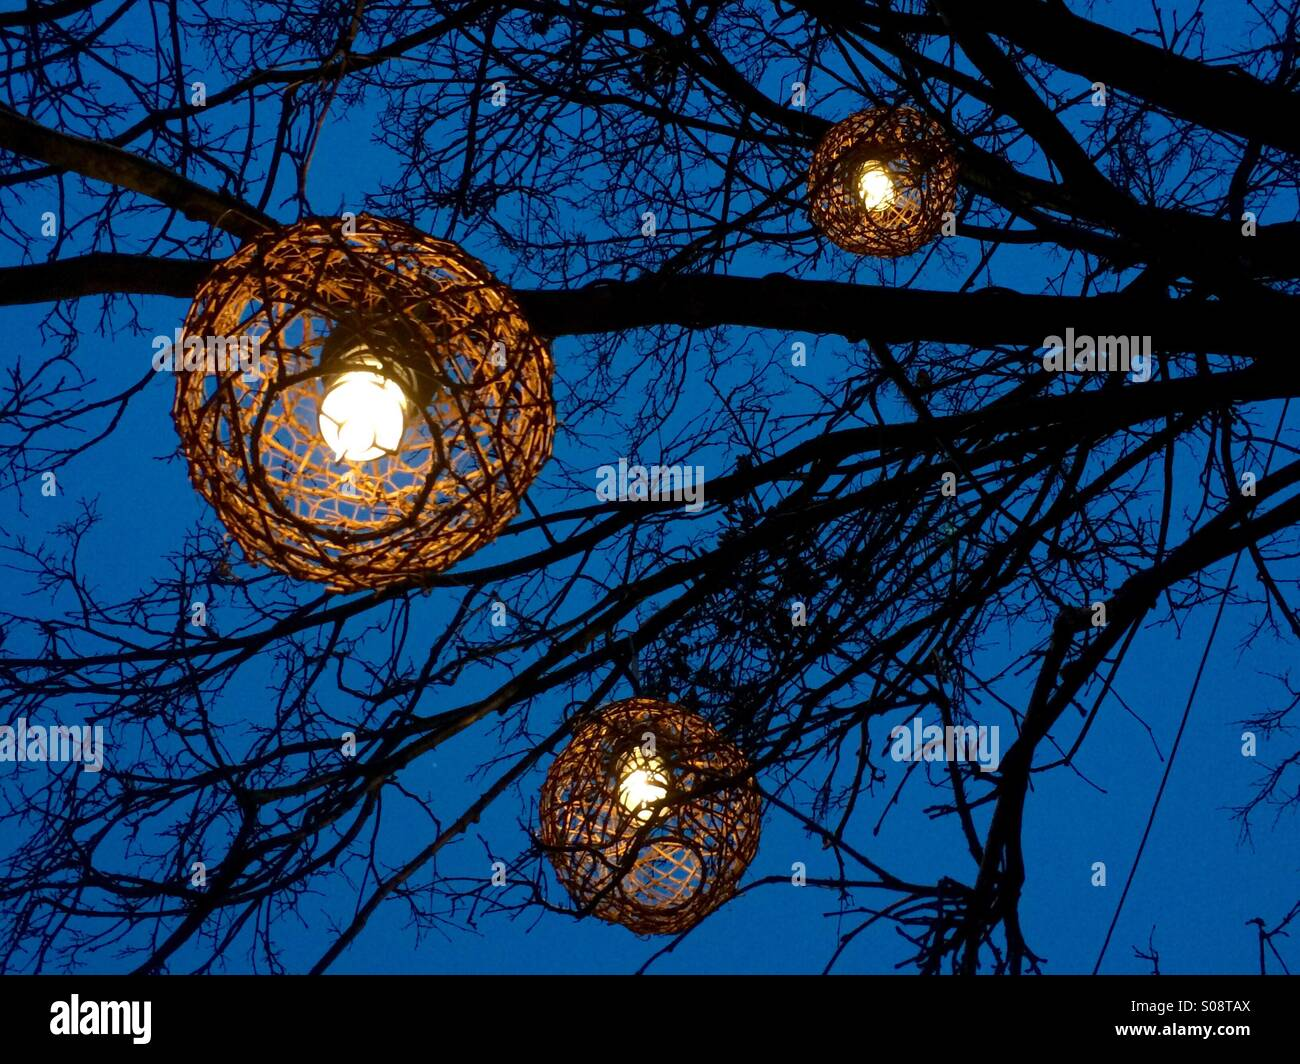 Lanterns Hanging Tree Branch High Resolution Stock Photography And Images Alamy